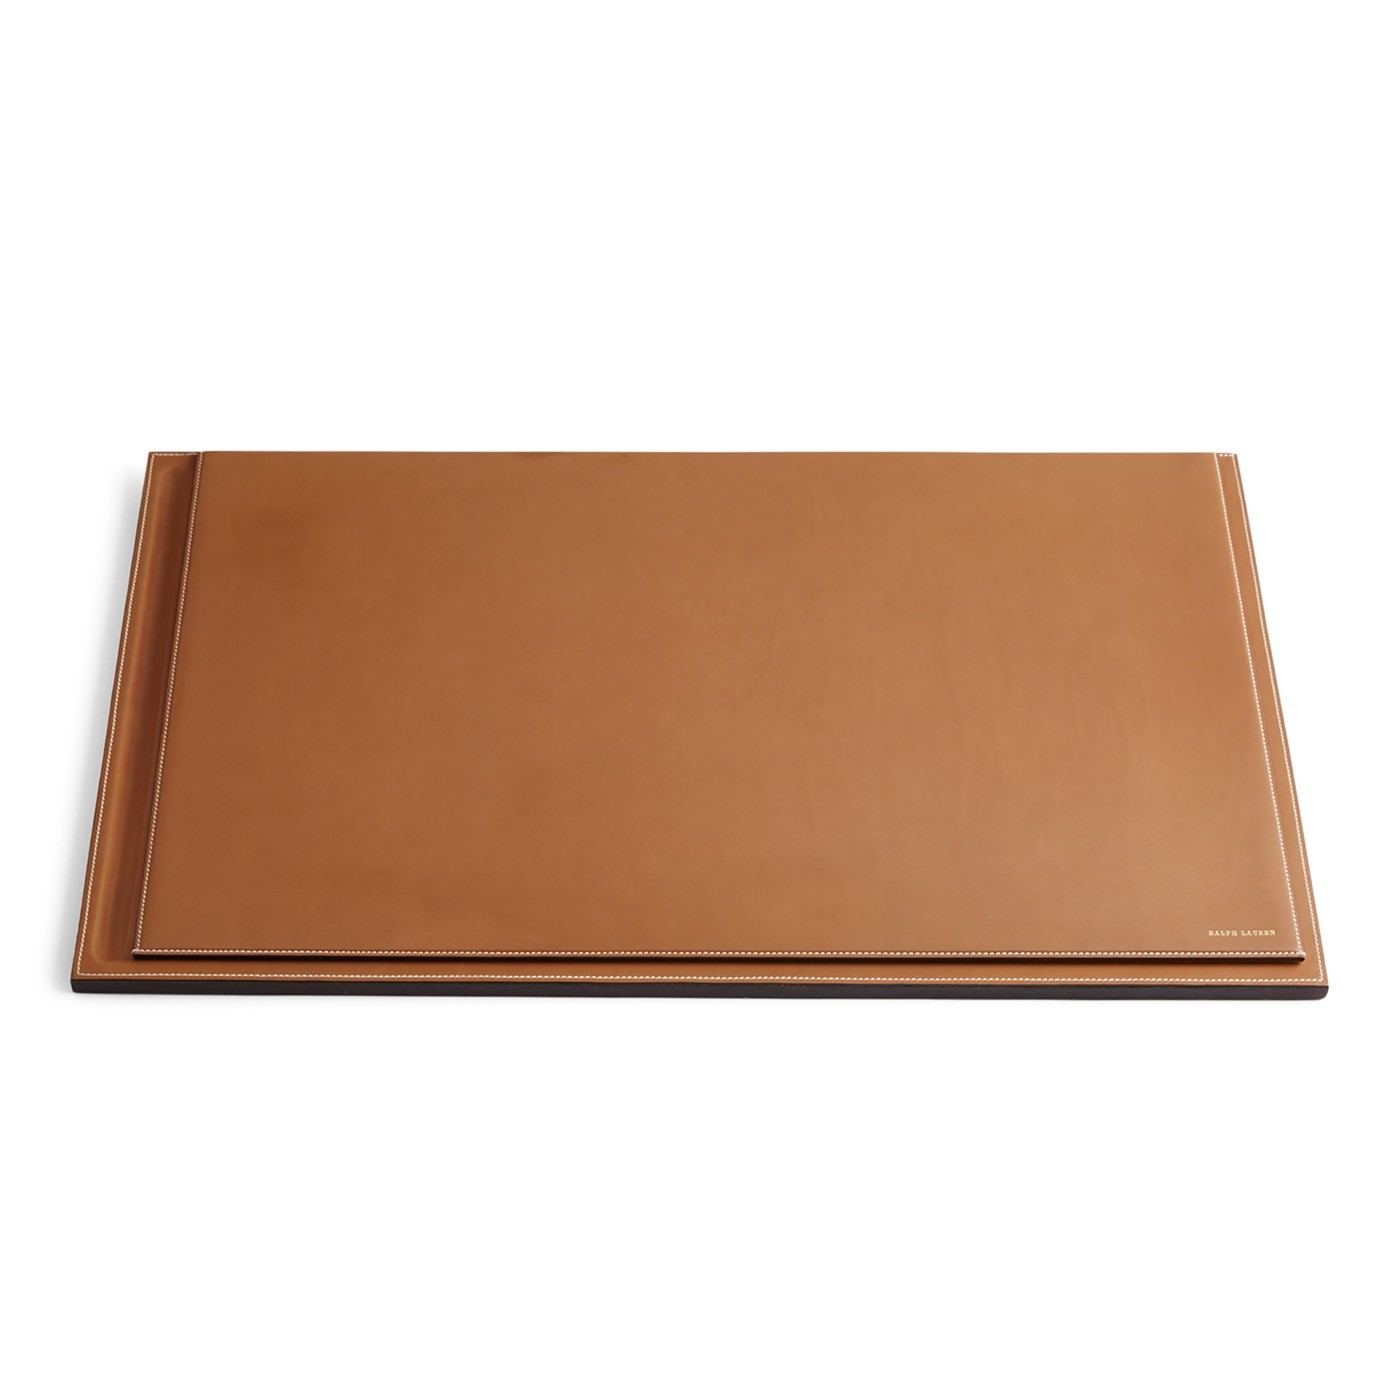 brennan leather desk blotter saddle plantation rh plantationdesign com leather desk blotter pad leather desk blotter australia